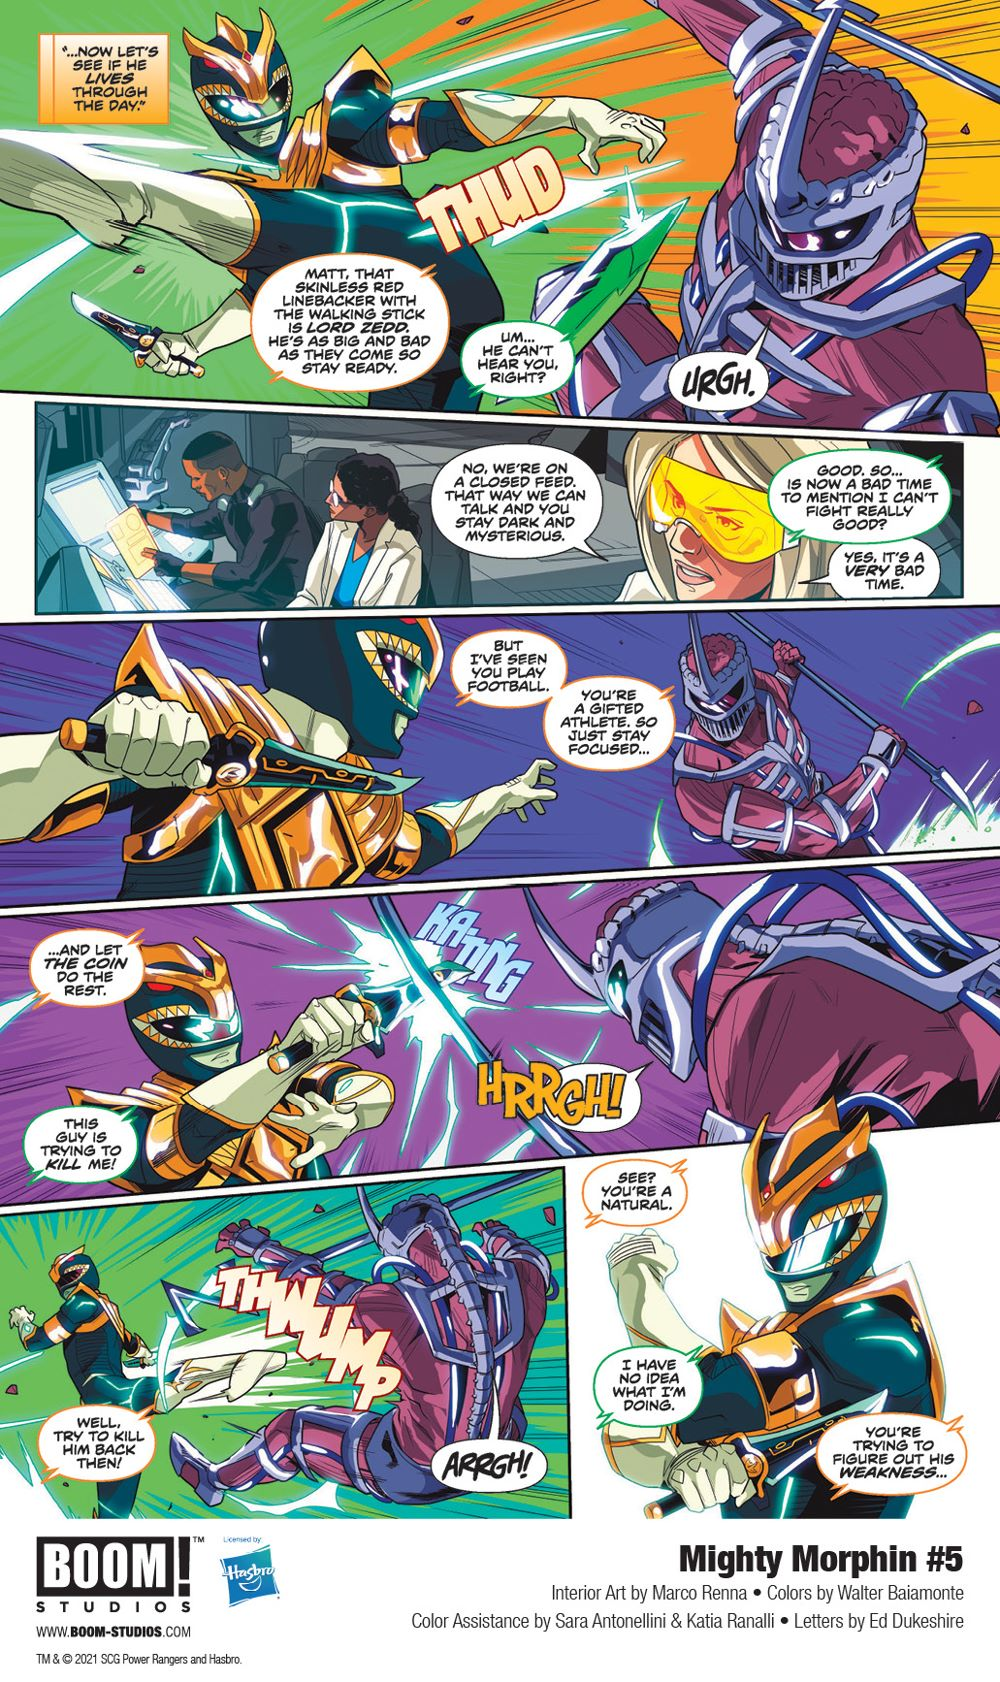 MightyMorphin_005_InteriorArt_005_PROMO First Look at BOOM! Studios' MIGHTY MORPHIN #5